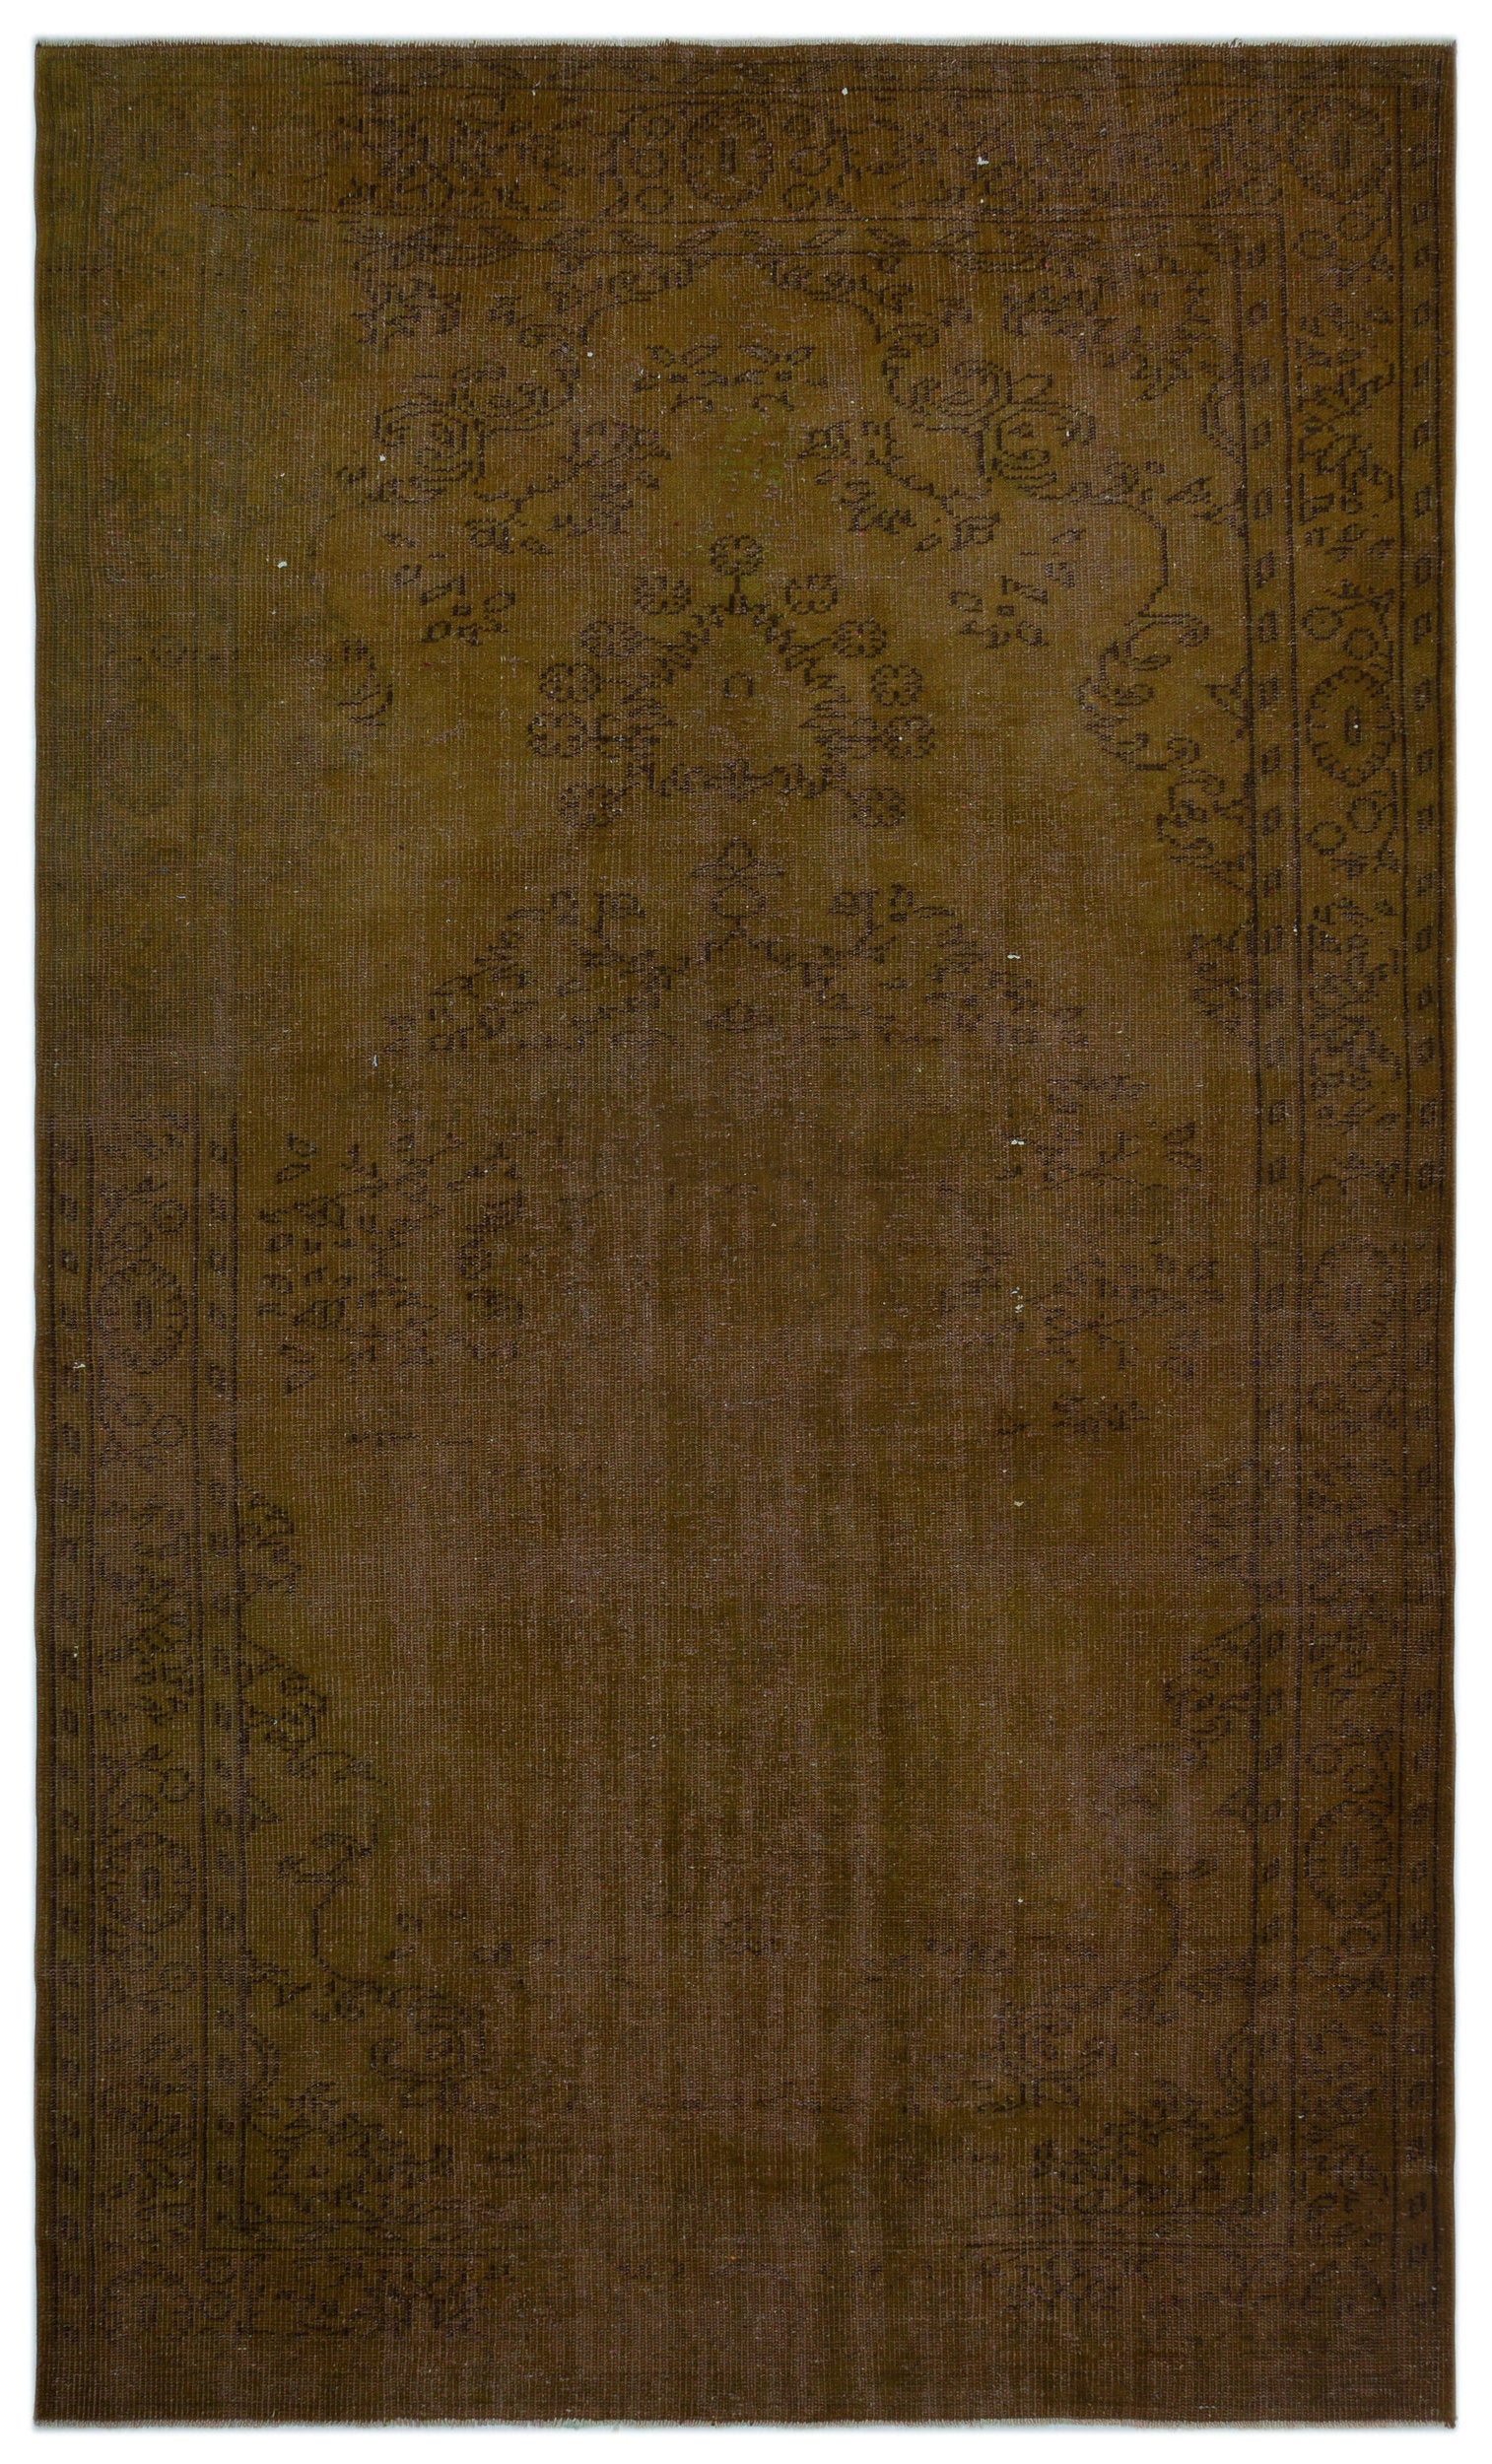 Brown Over Dyed Vintage Rug 5'9'' x 9'11'' ft 176 x 302 cm